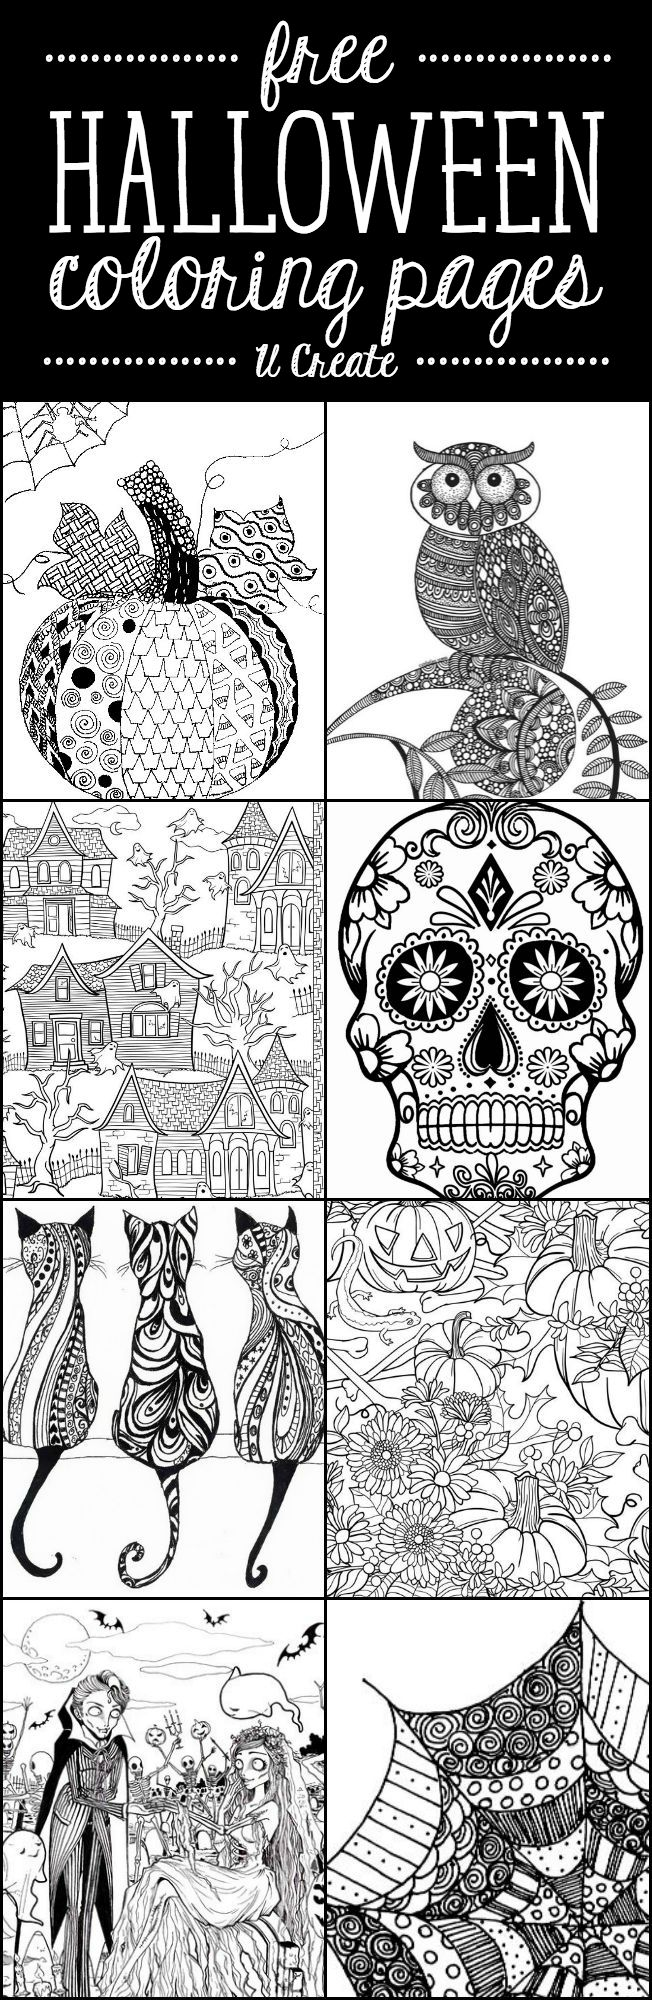 free halloween adult coloring pages at u create - Coloring Pages For Young Adults